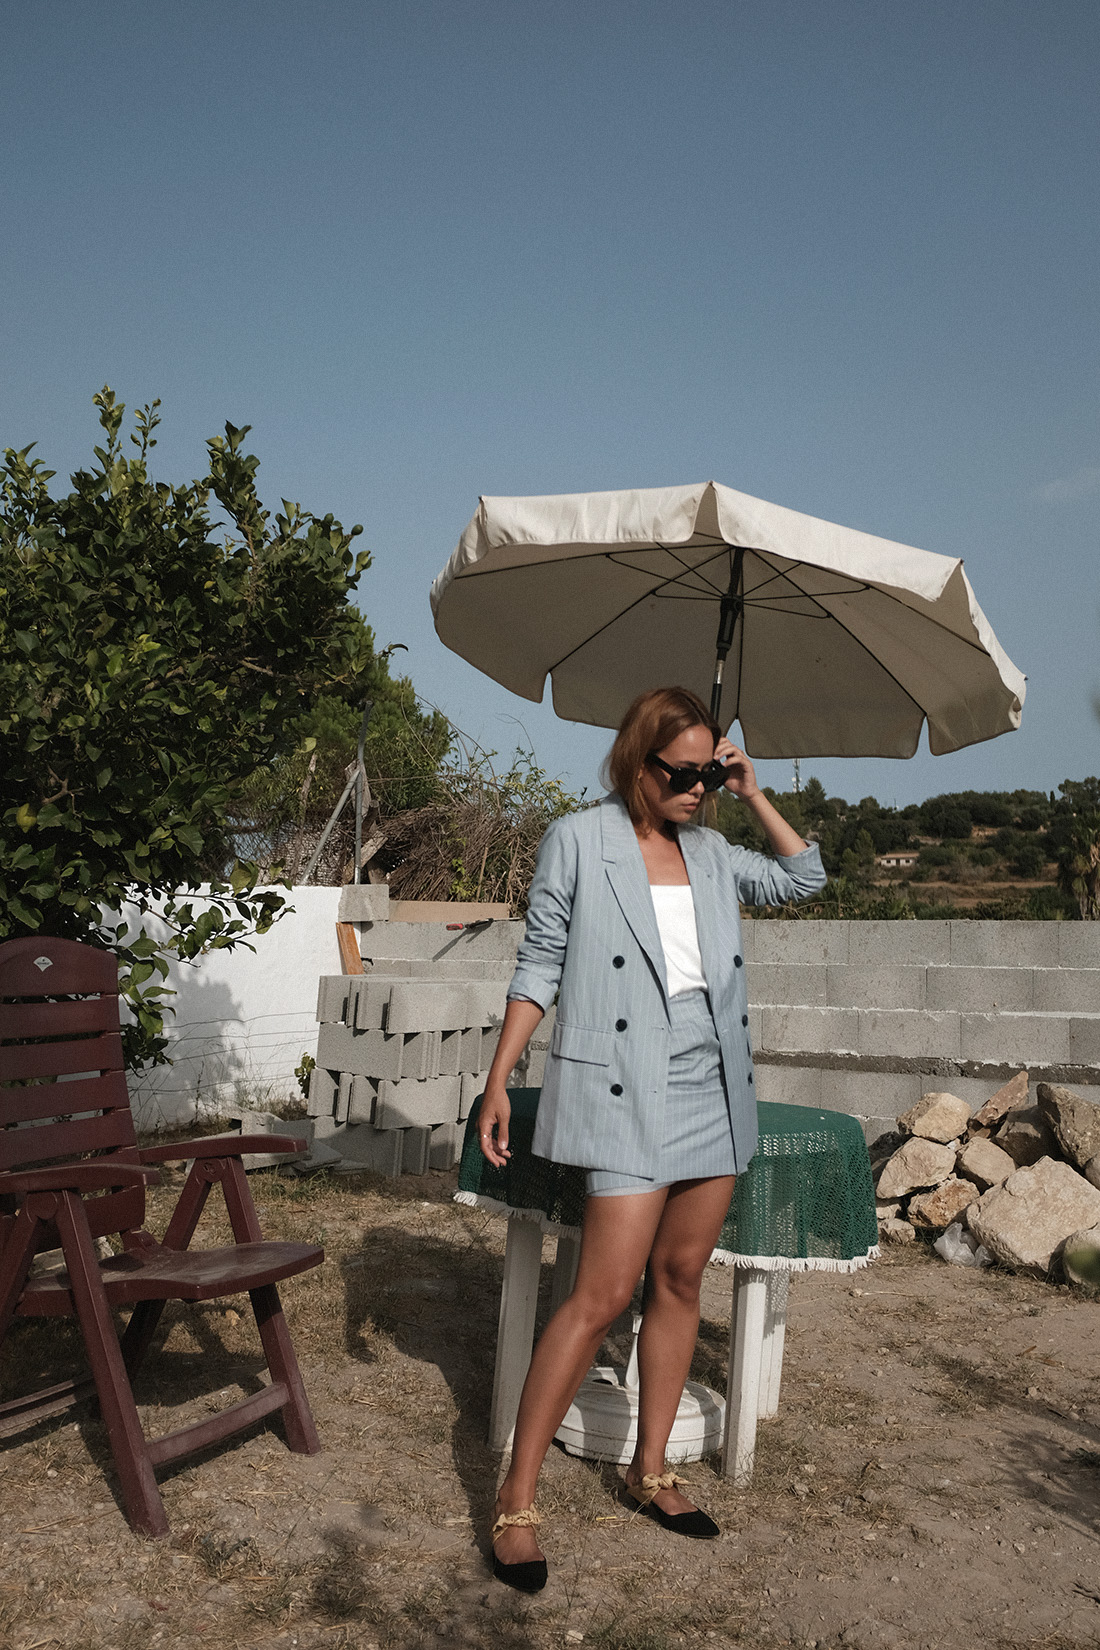 Desi is wearing: The Row Bow mules, Céline Sunglasses, Edited the Label Pinstripe blazer and pinstripe pencil skirt, Edited the Label silky white camisole